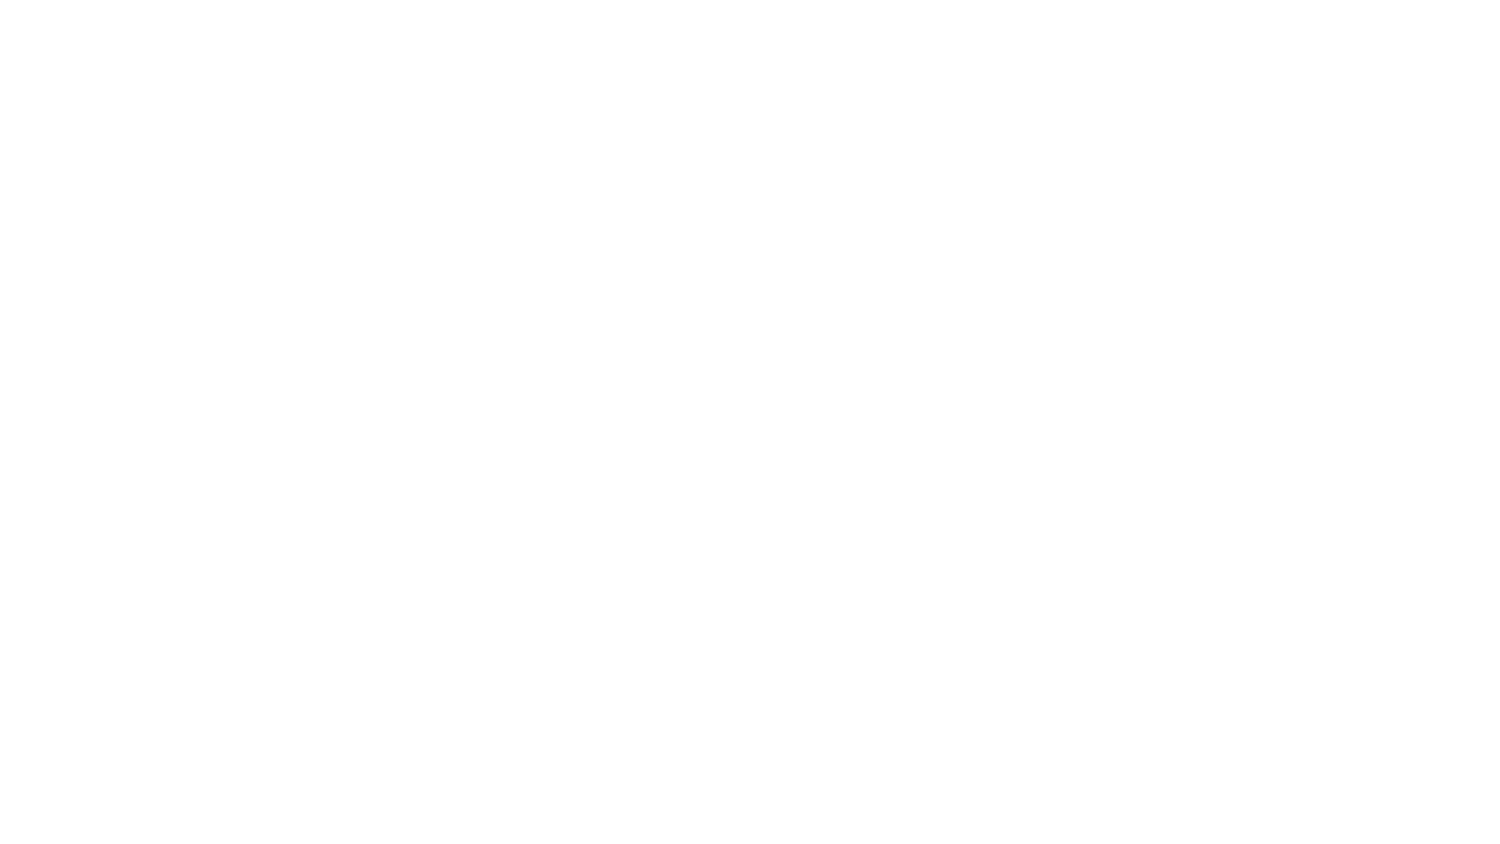 Canine Aventures